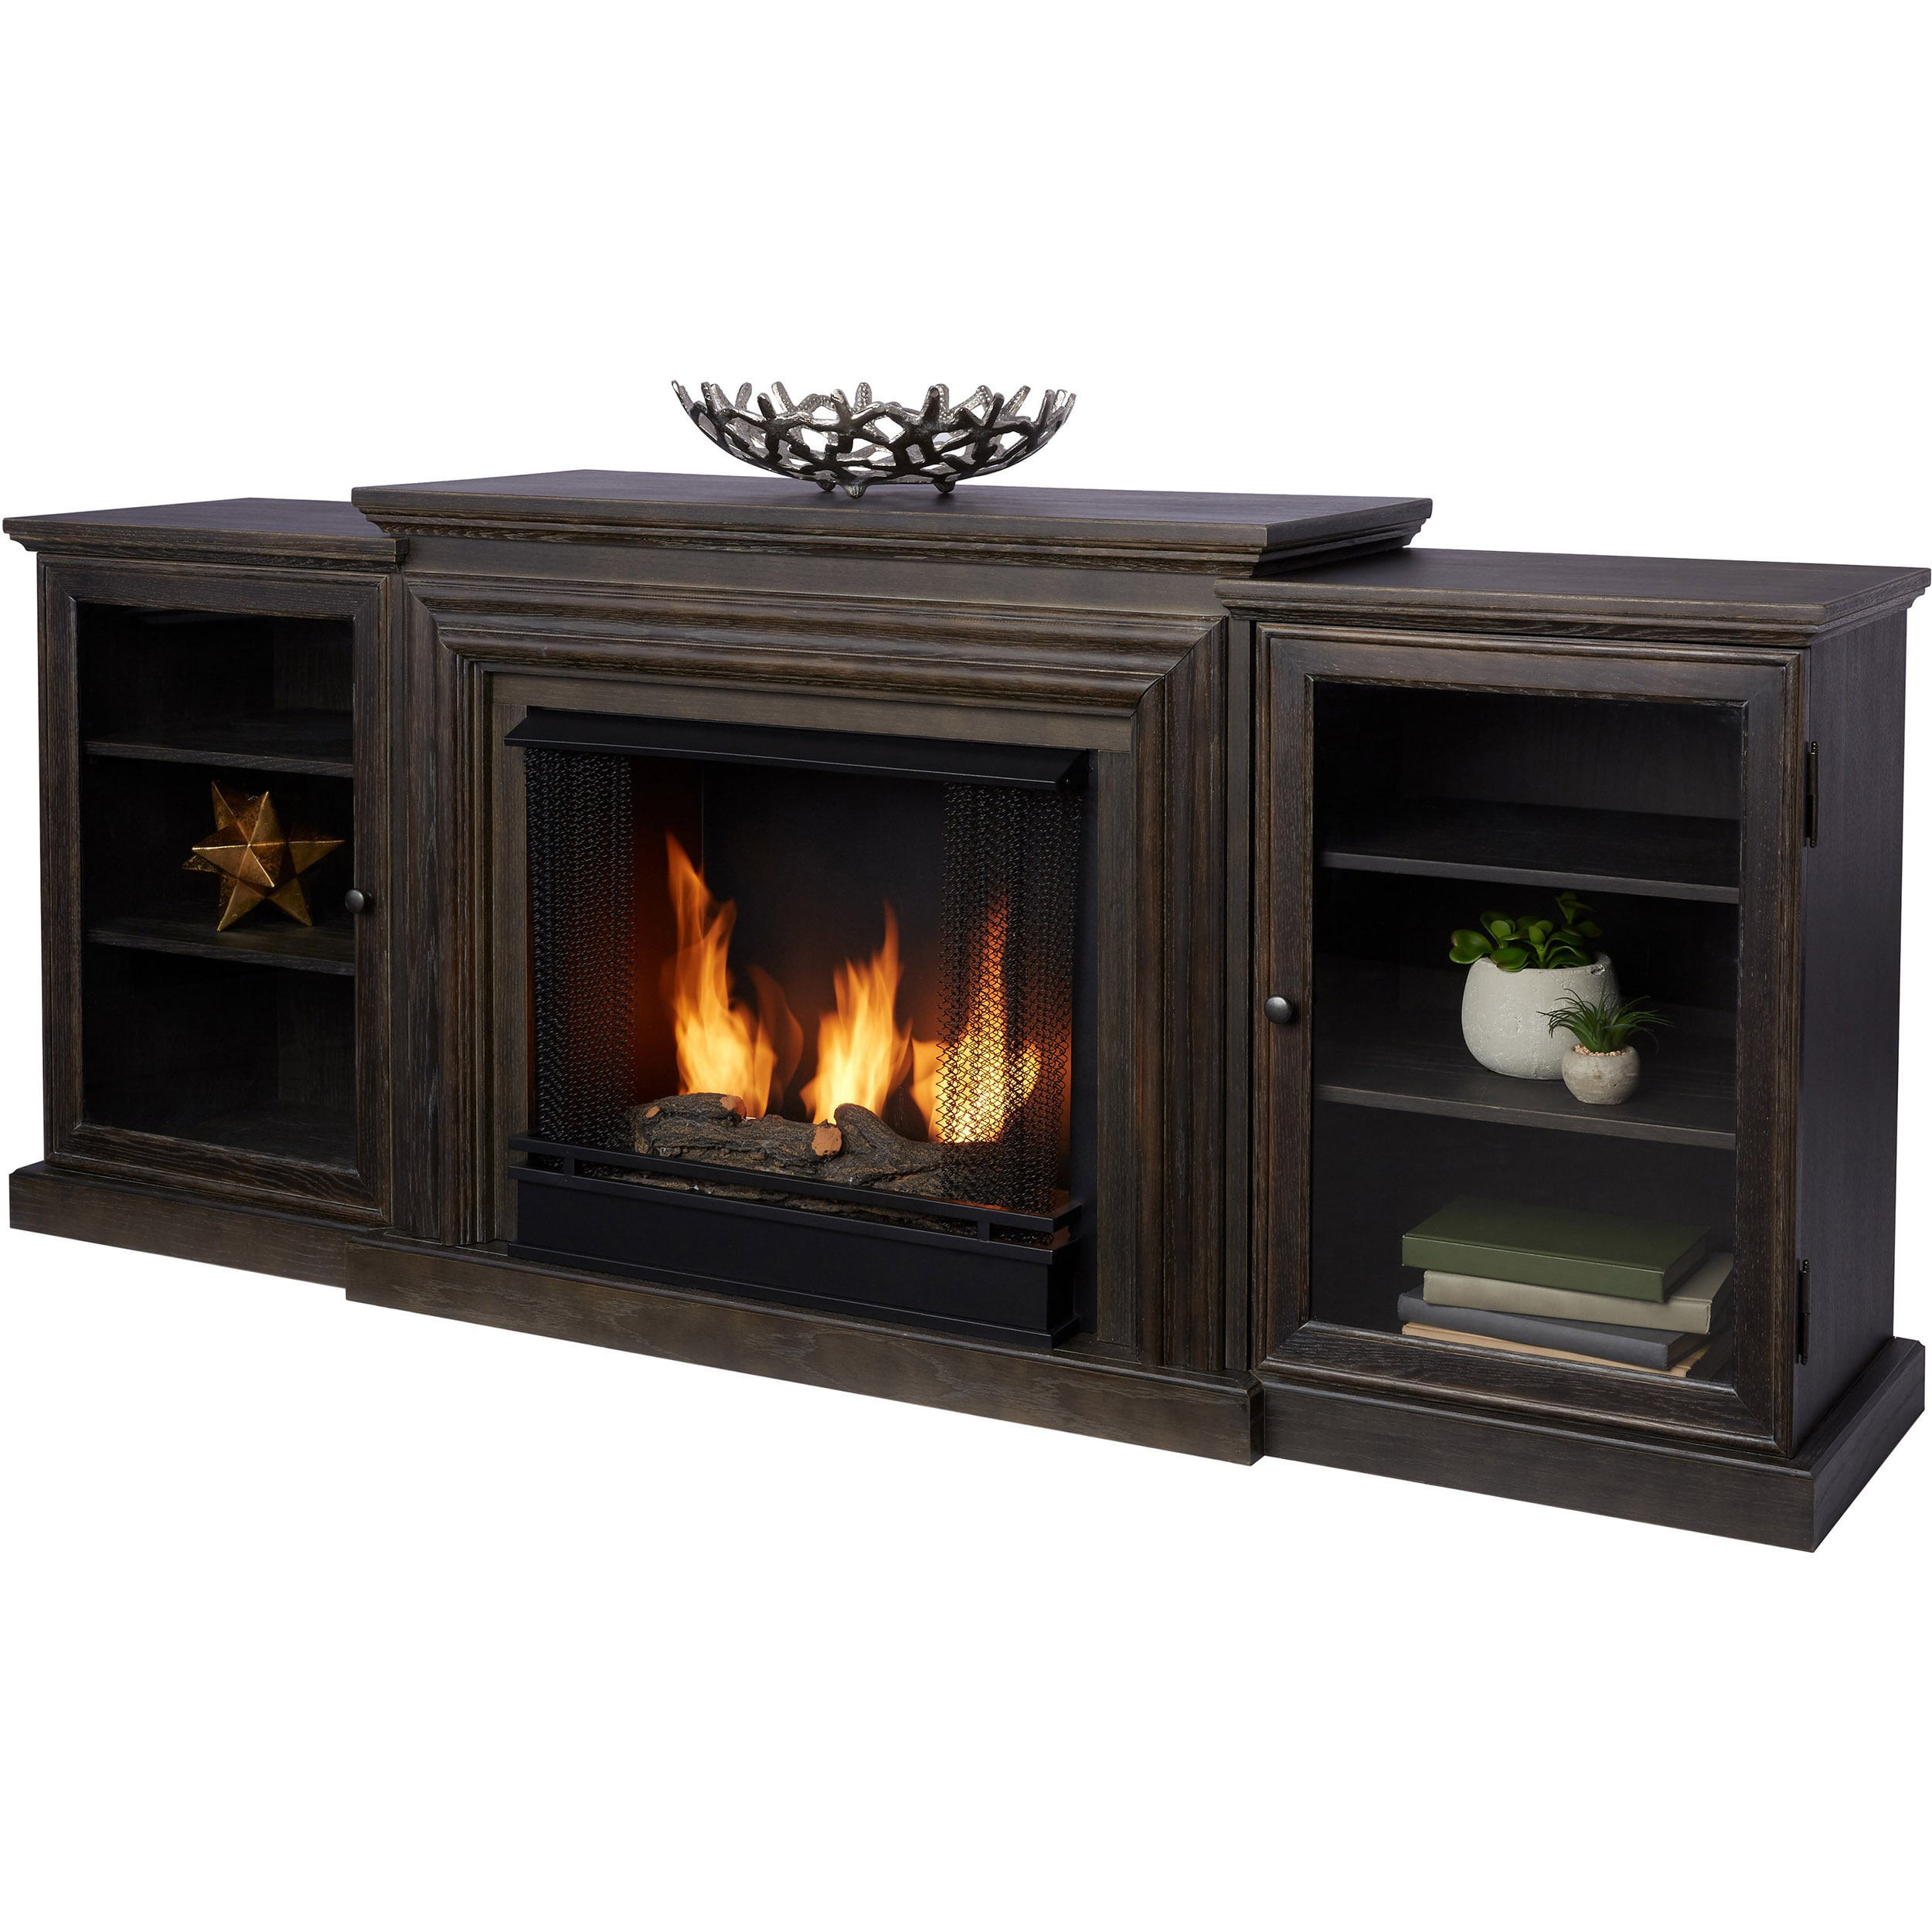 frederick grey gel fireplace entertainment center by real flame rh overstock com Fireplace Entertainment Center Combinations Entertainment Center with Fireplace